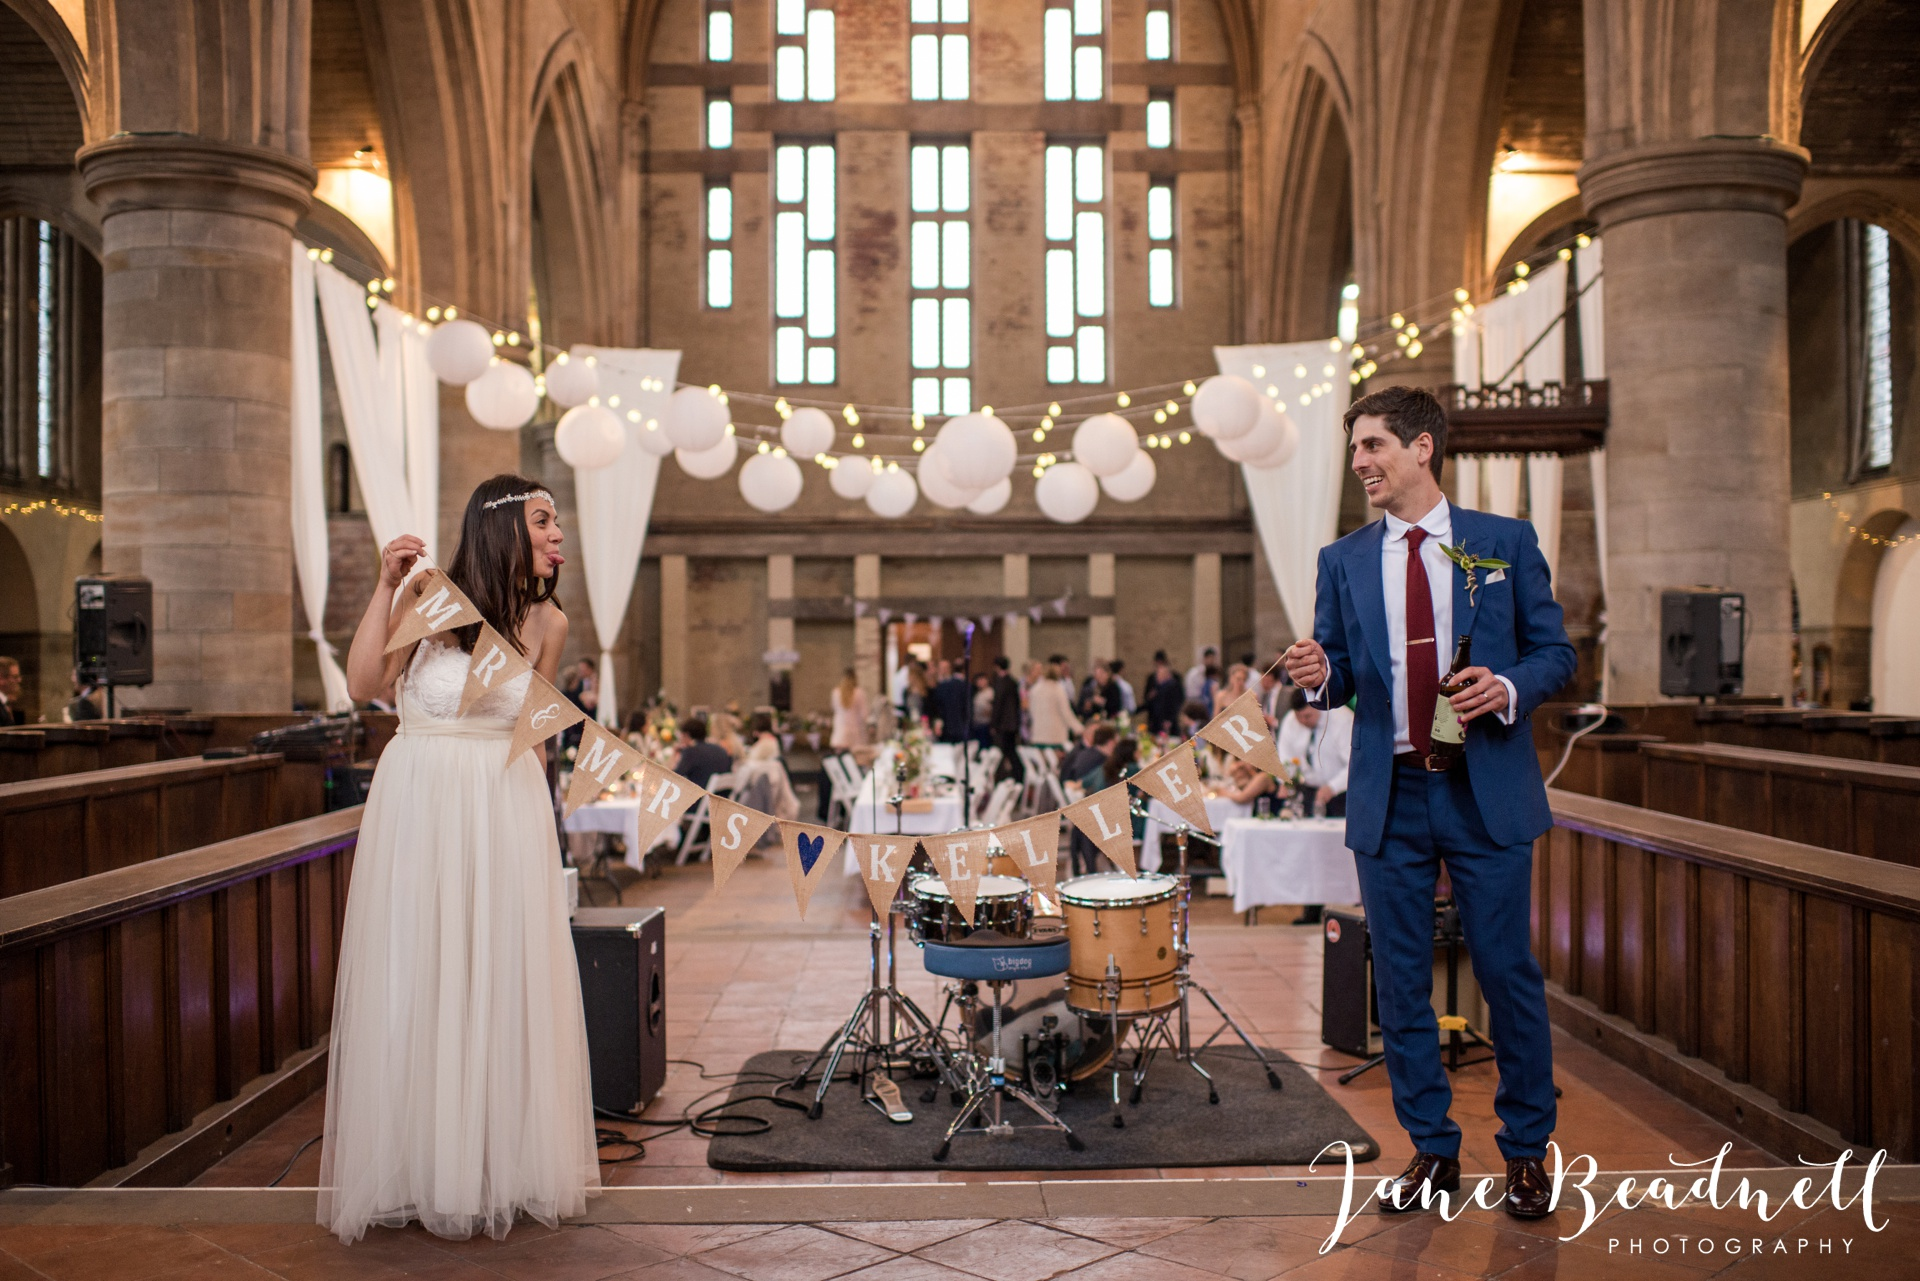 Left Bank Centre Leeds wedding photography by Jane Beadnell photography Yorkshire_0125